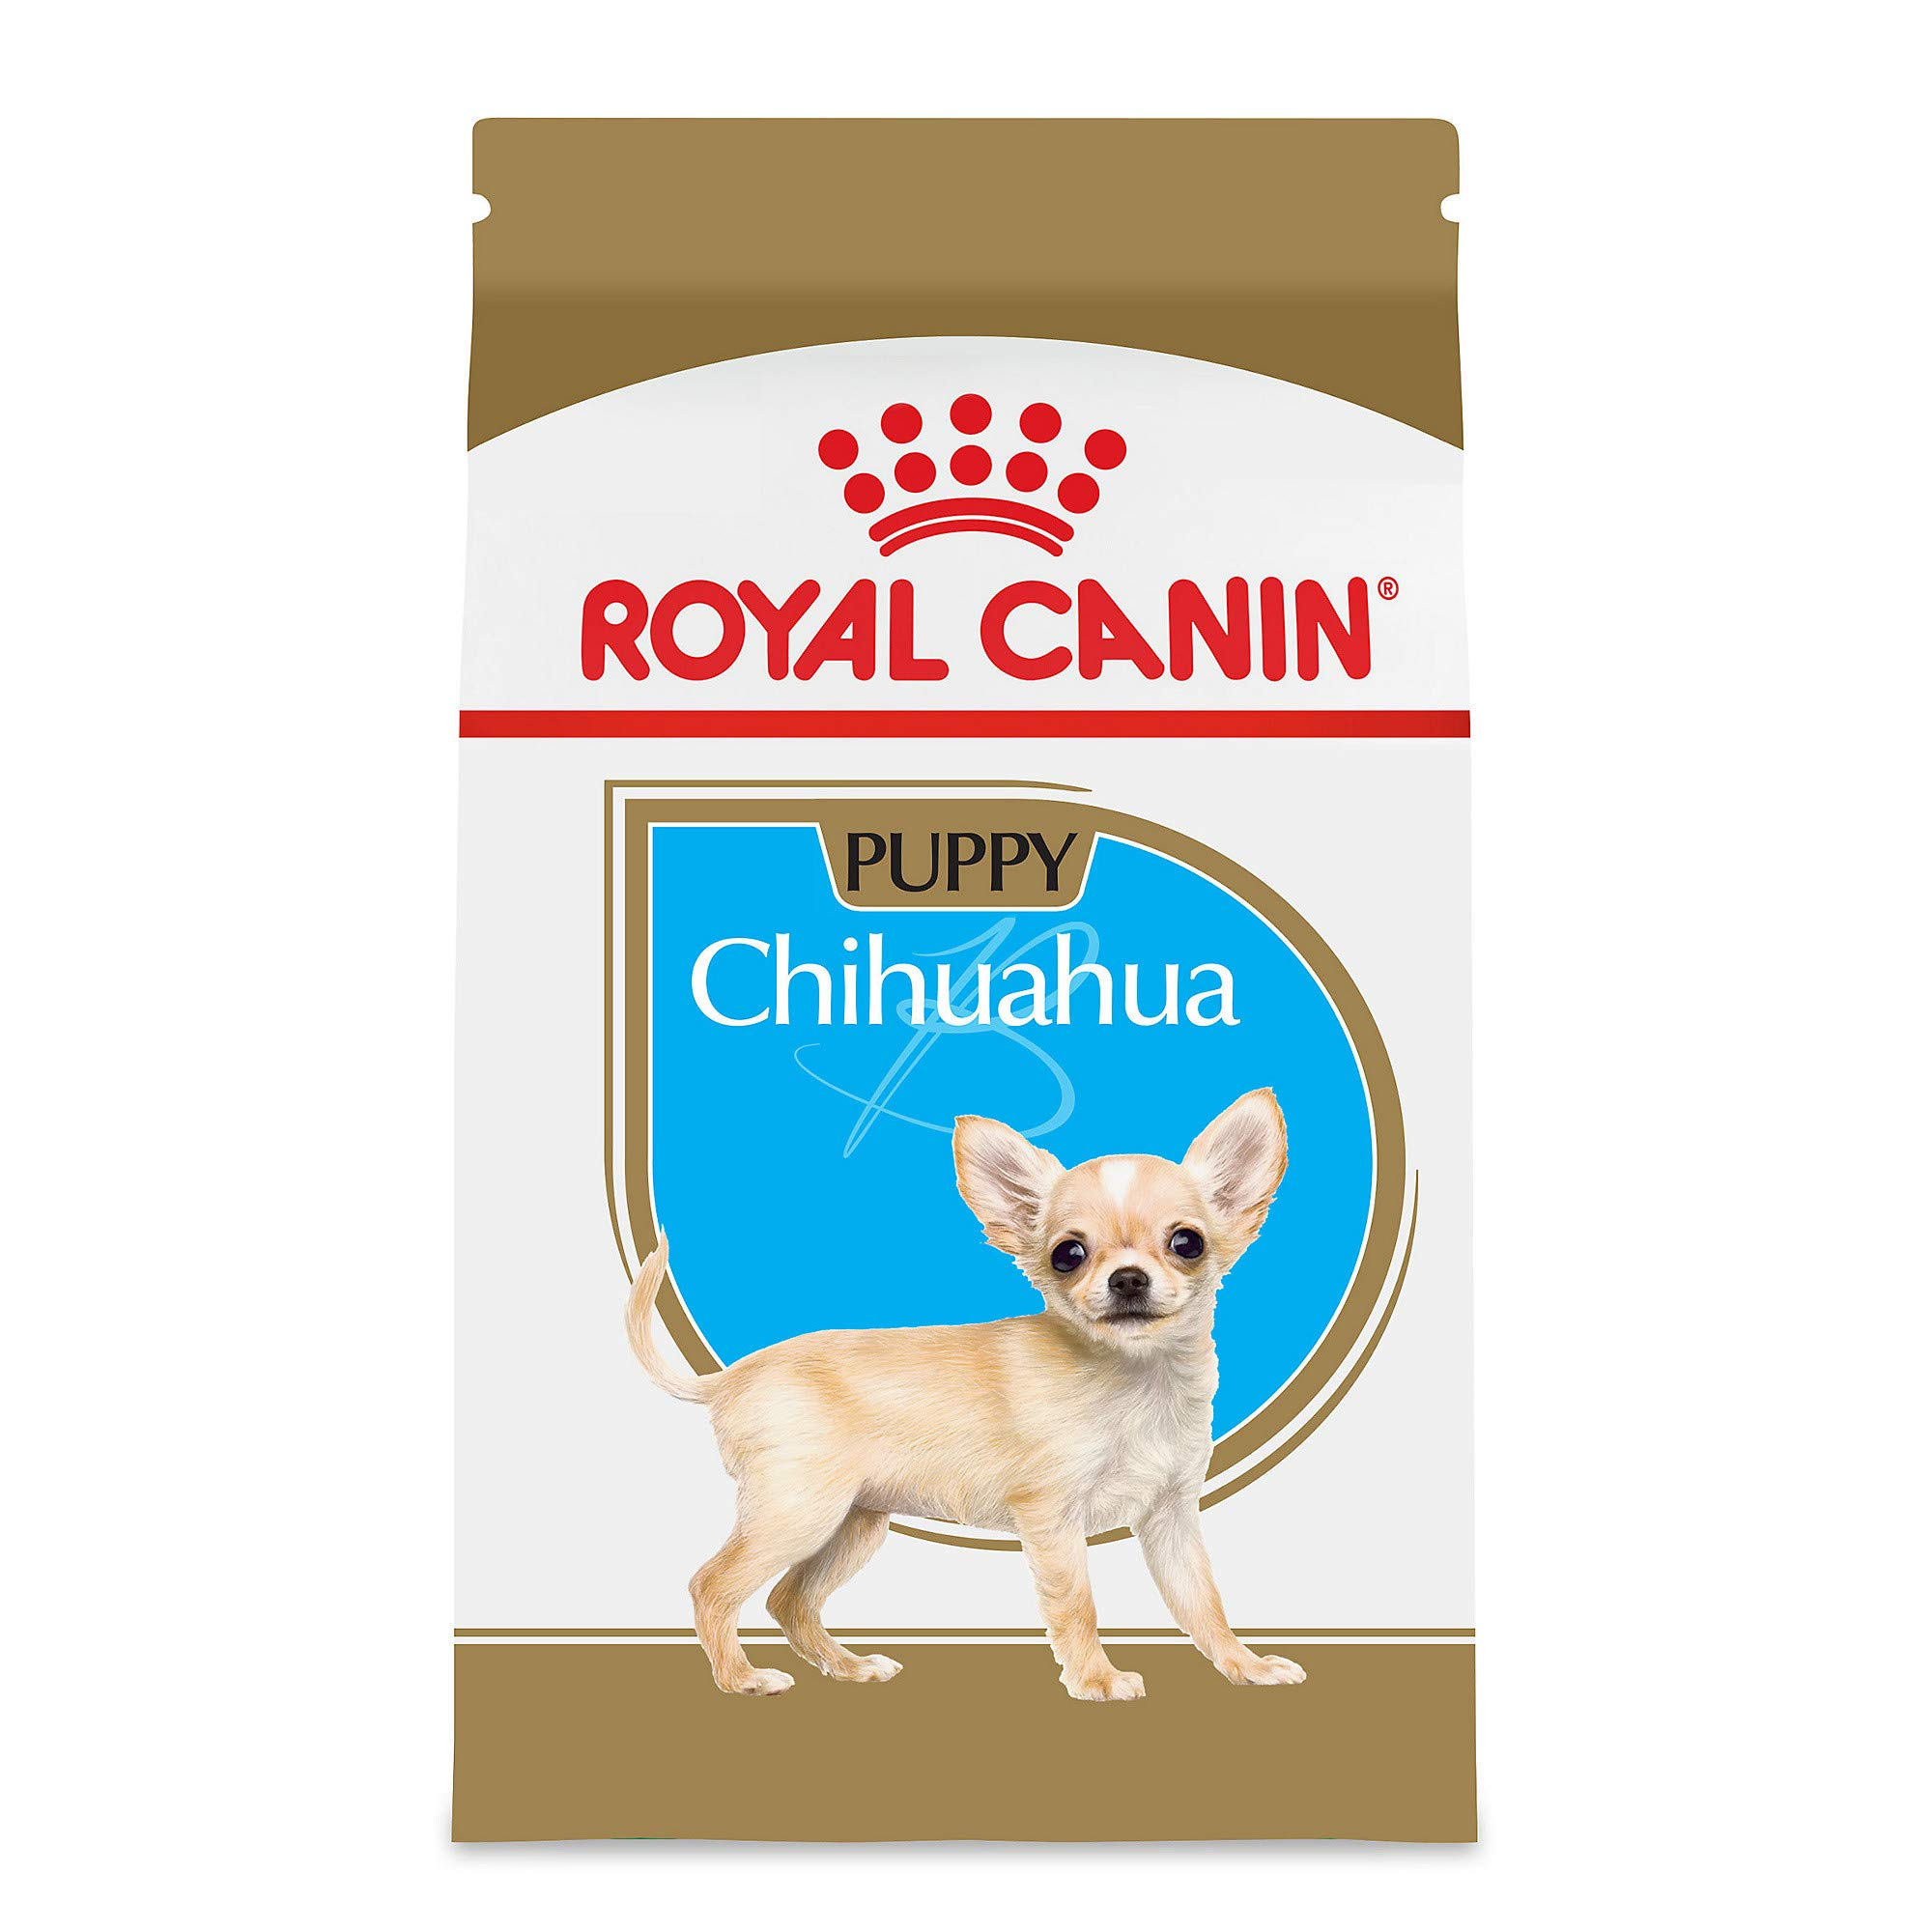 Royal Canin Chihuahua Puppy Breed Specific Dry Dog